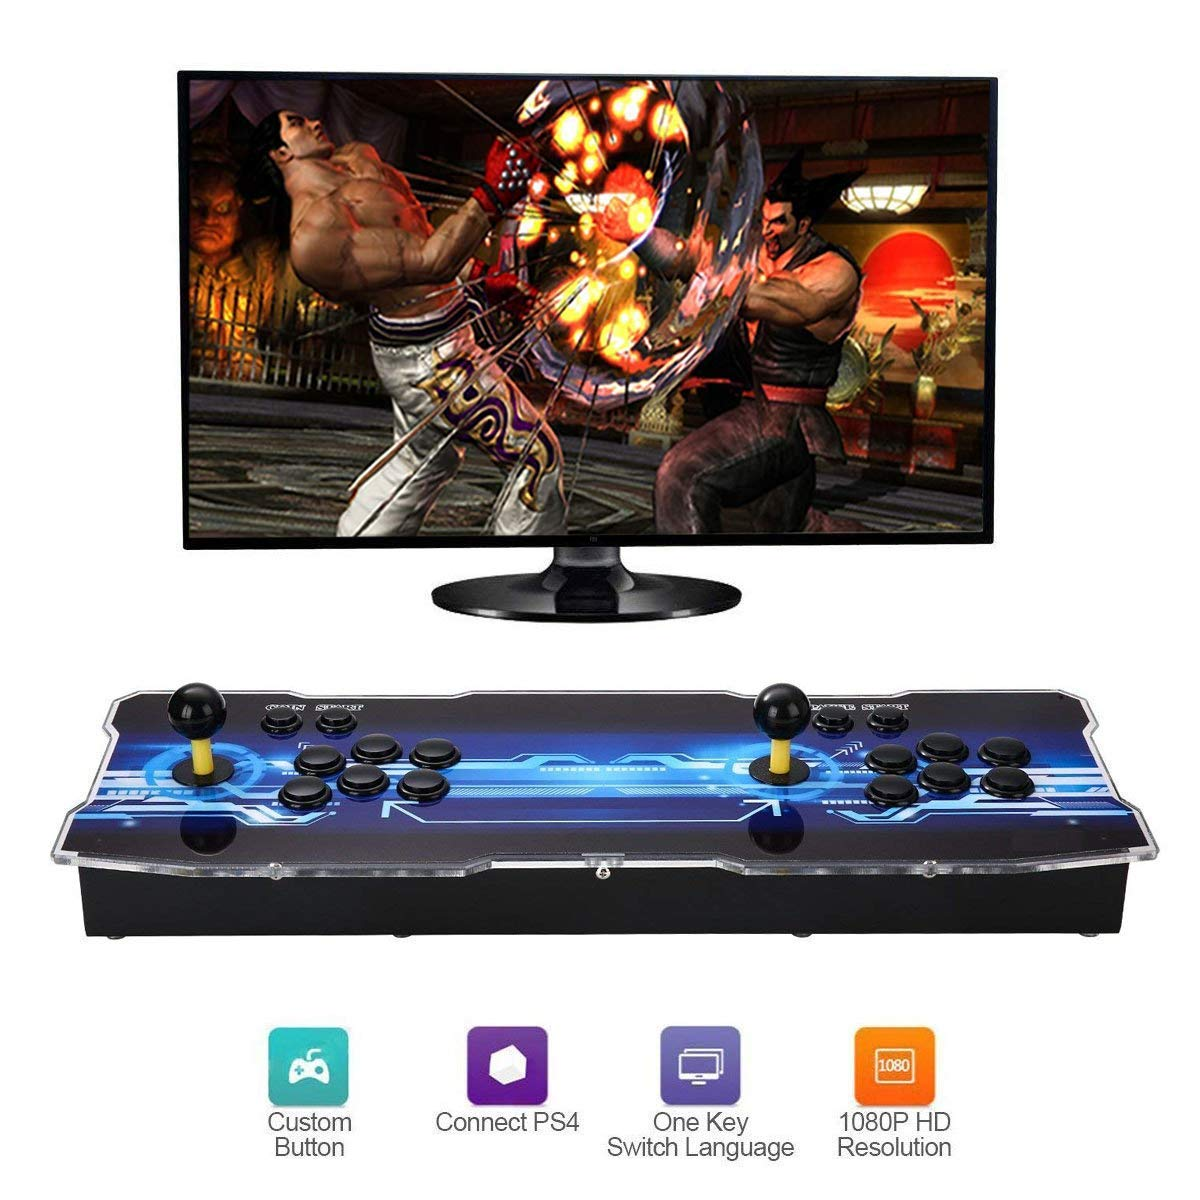 SeeKool Newest 3D Pandora X Arcade Game Console, 1920x1080 Full HD 4 Players Max Arcade Machine with 2200 Games, Support Extended TF Card& USB Disk to Enjoy More Games PC / Laptop / TV / PS3 by SeeKool (Image #2)